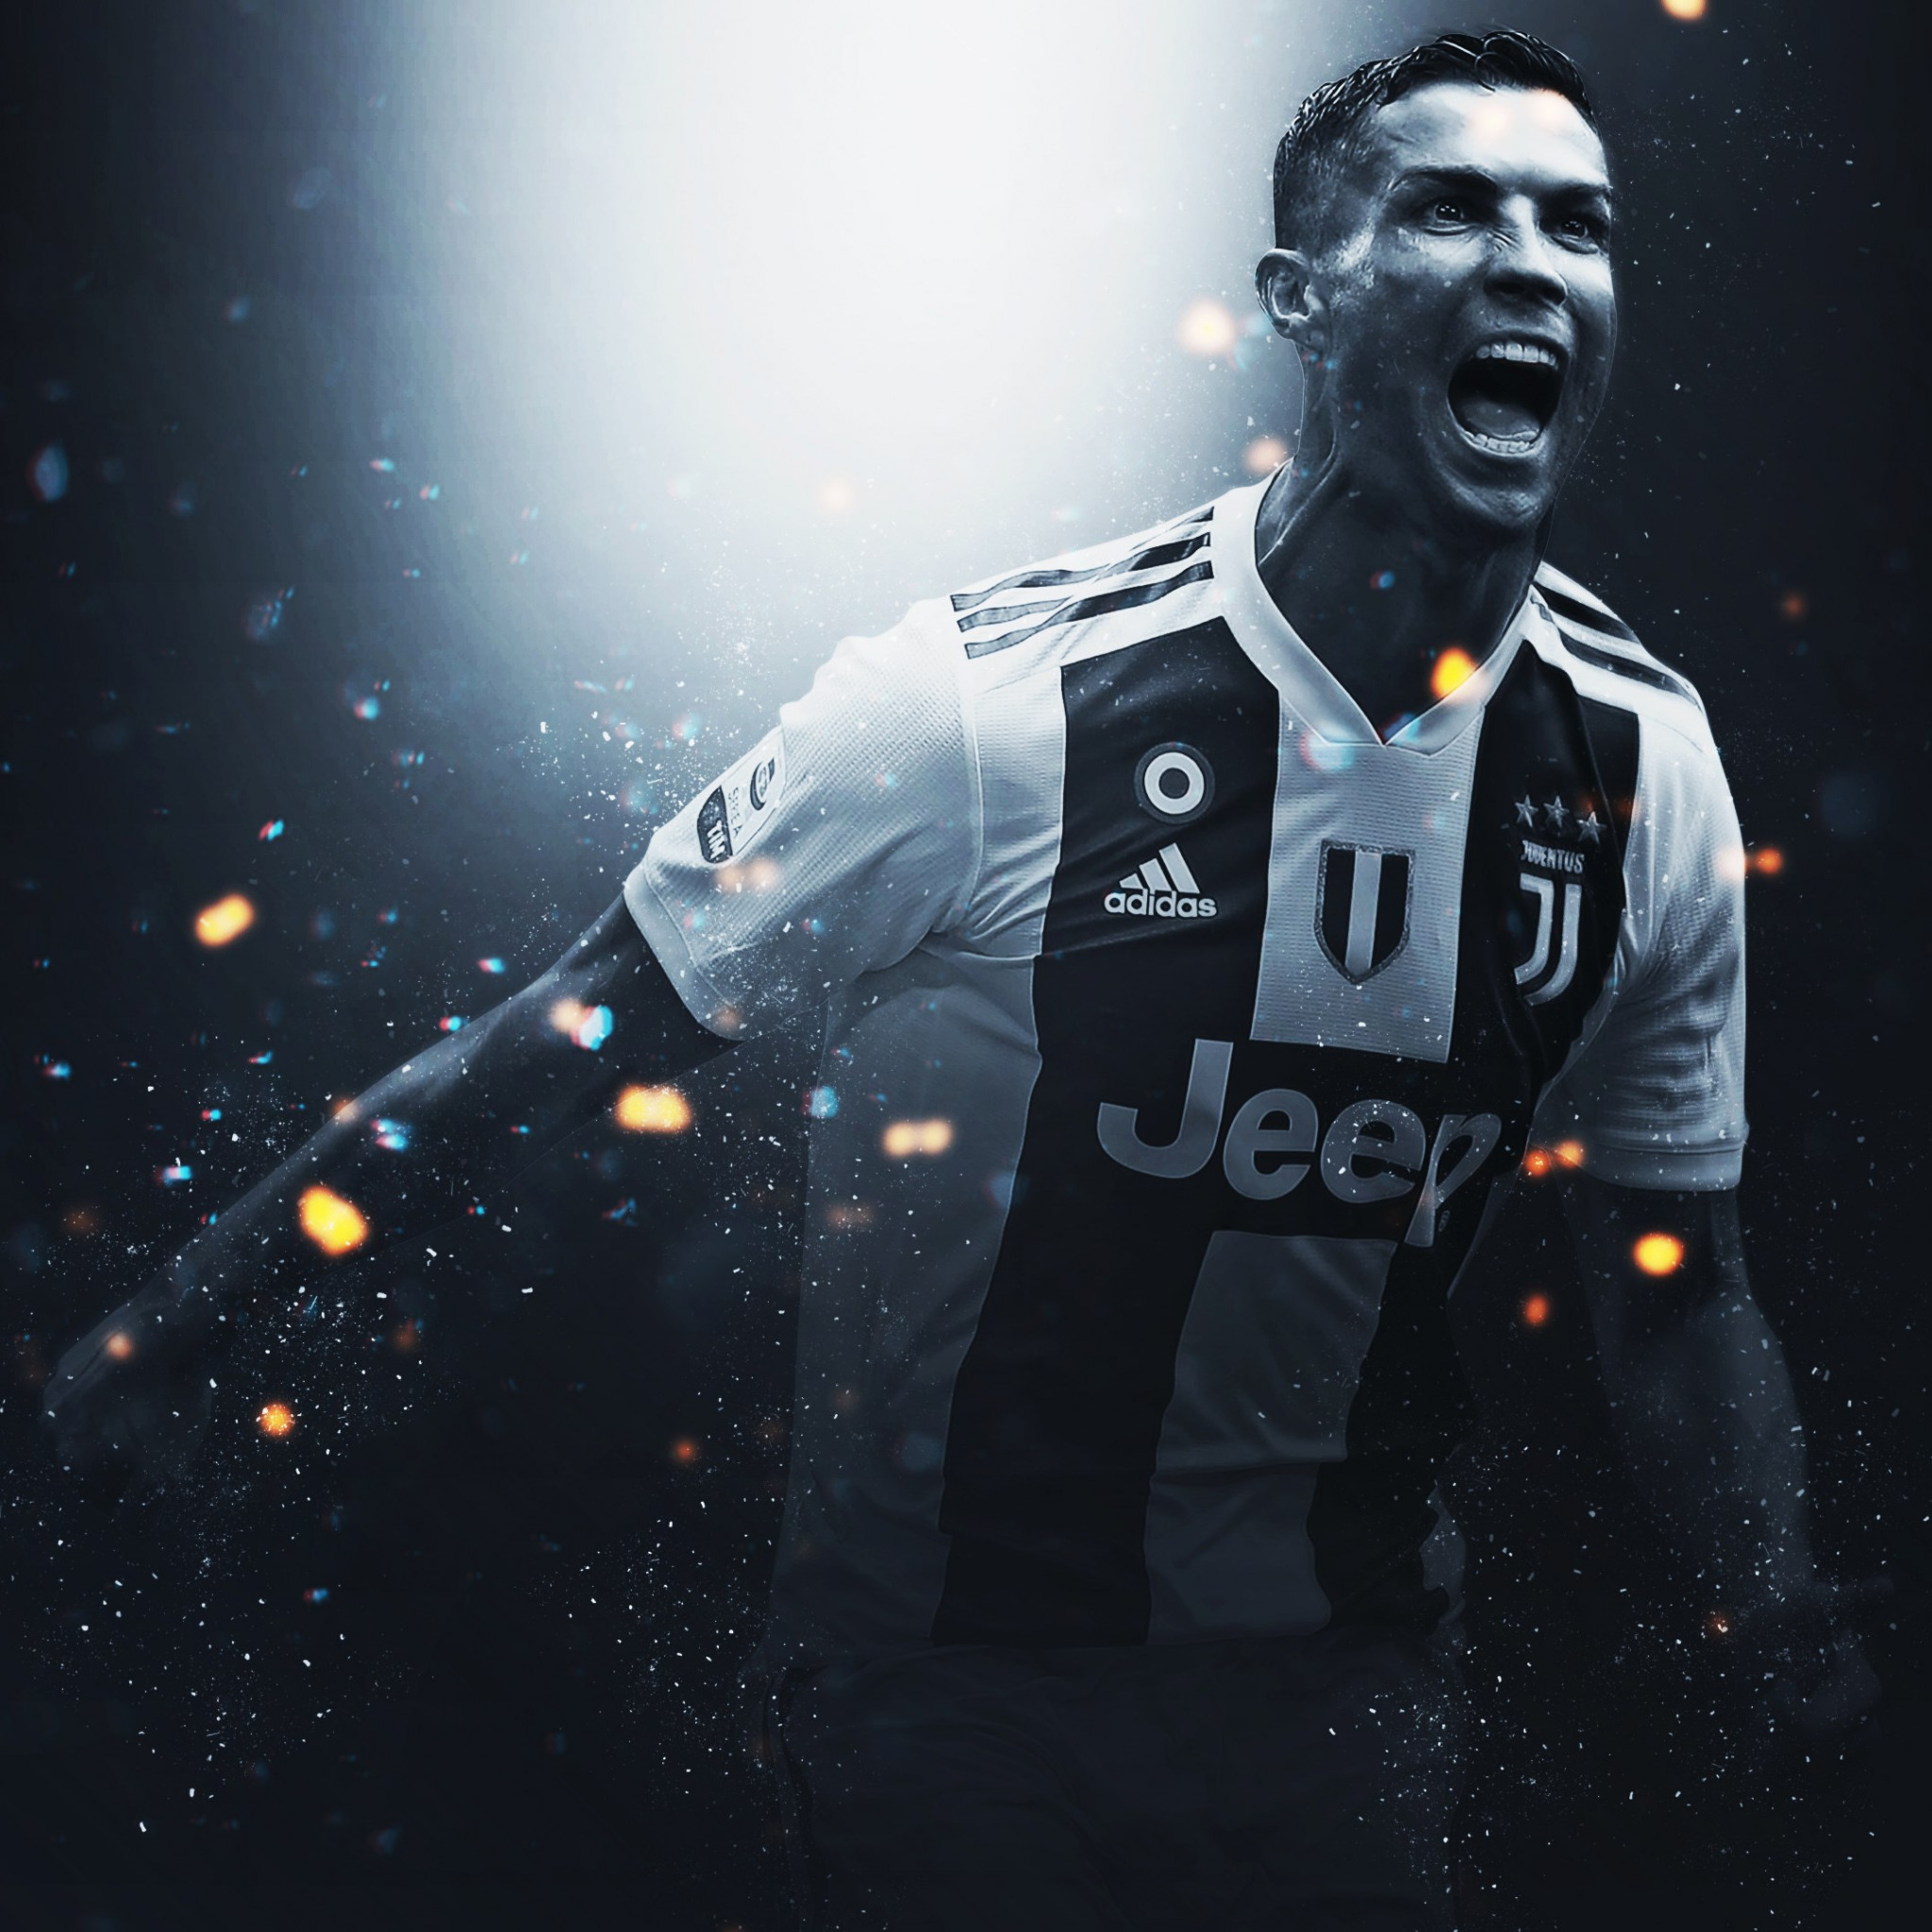 Cristiano Ronaldo at Juventus wallpaper 2048x2048